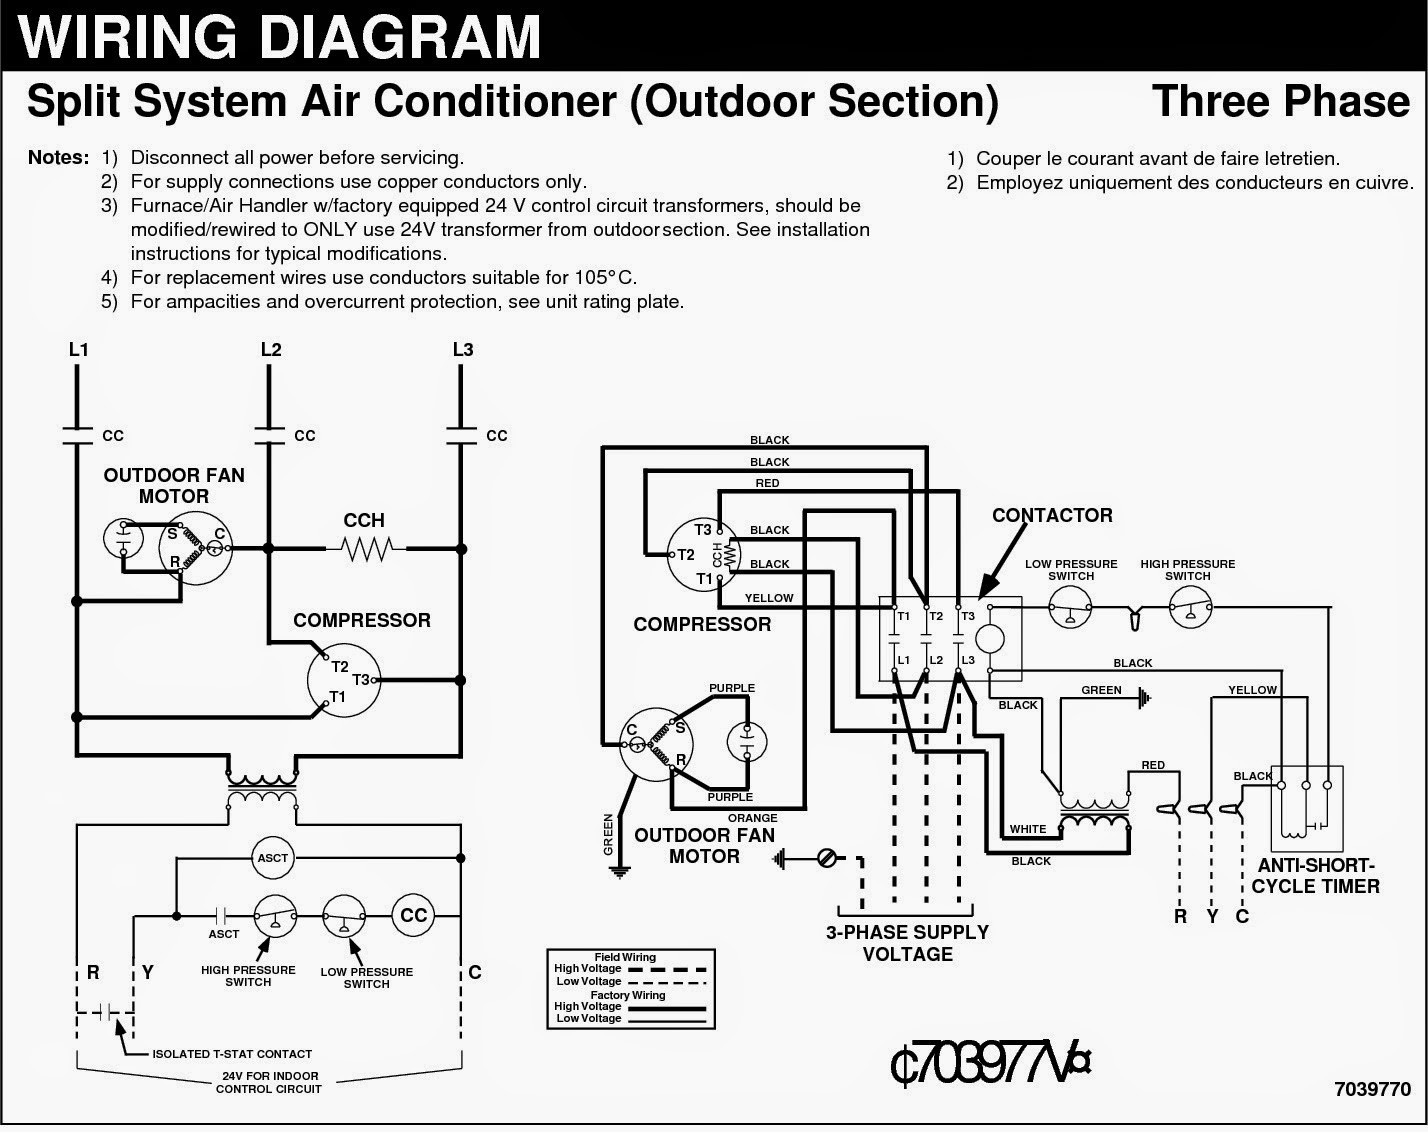 Basic Auto Wiring Diagrams Car Air Conditioning Diagram Pdf Database Library Compressor